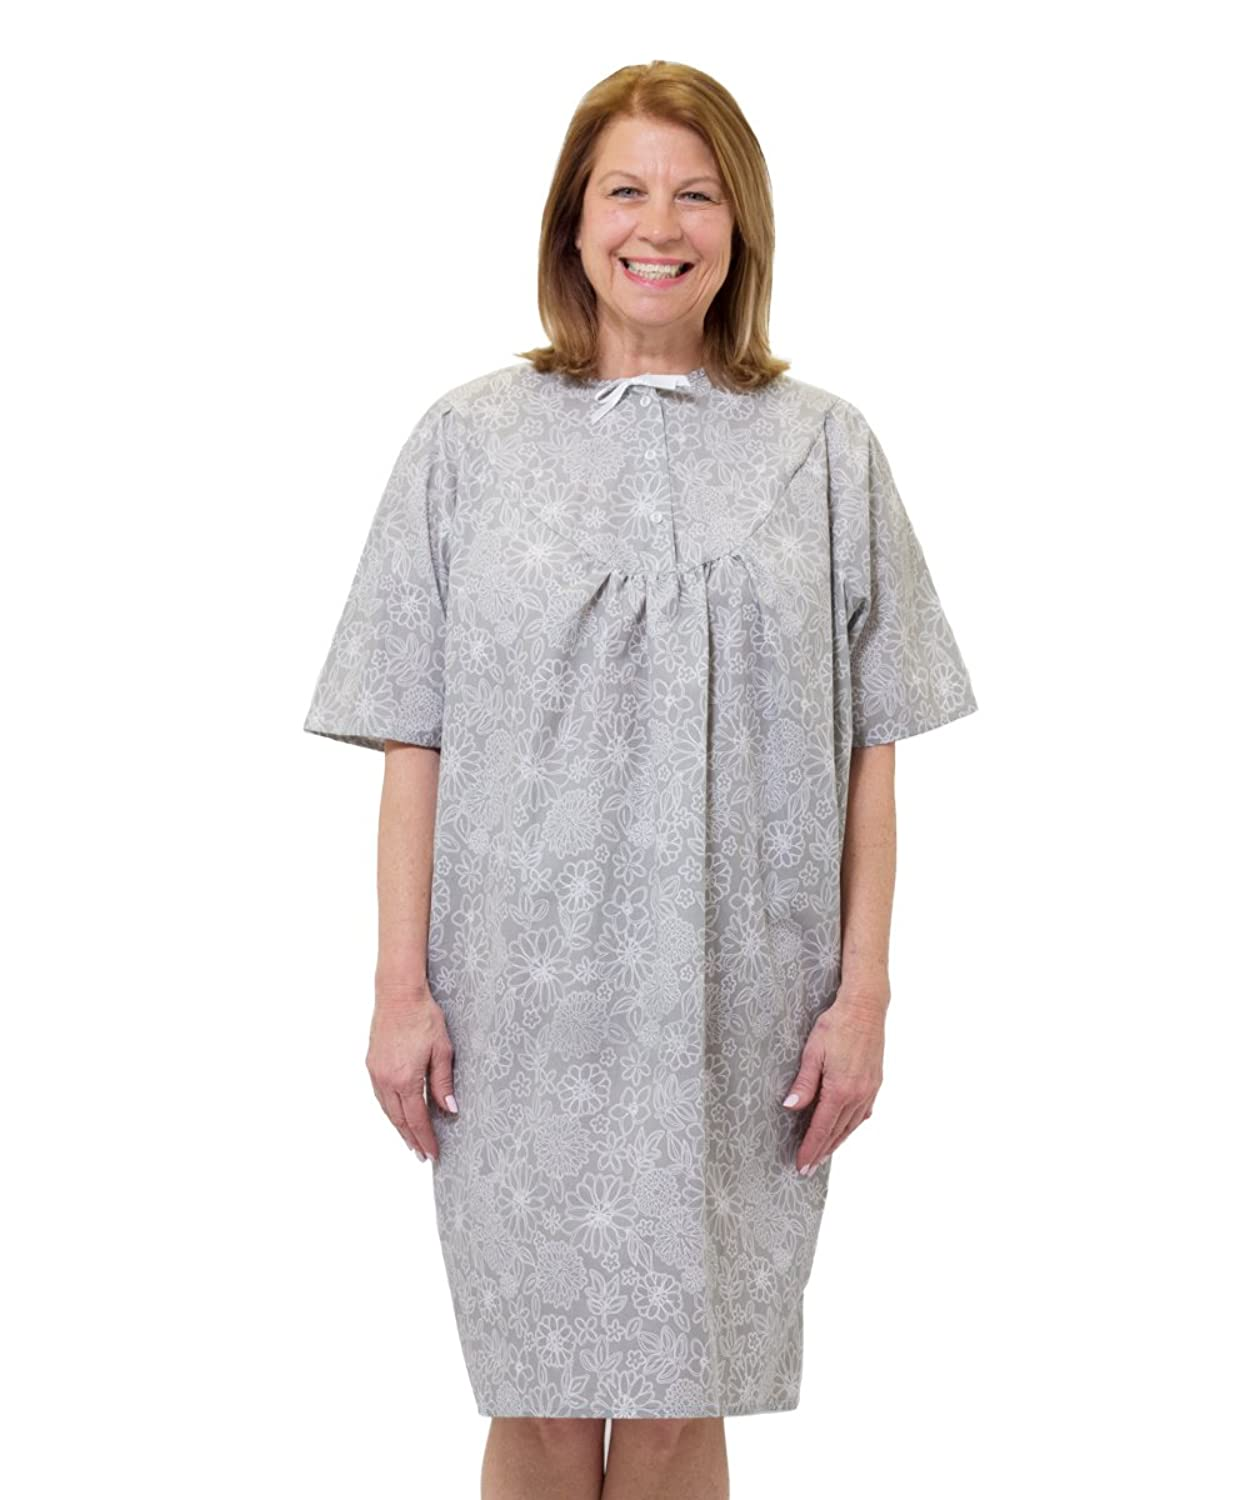 Fancy Hospital Gowns Australia Elaboration - Images for wedding gown ...